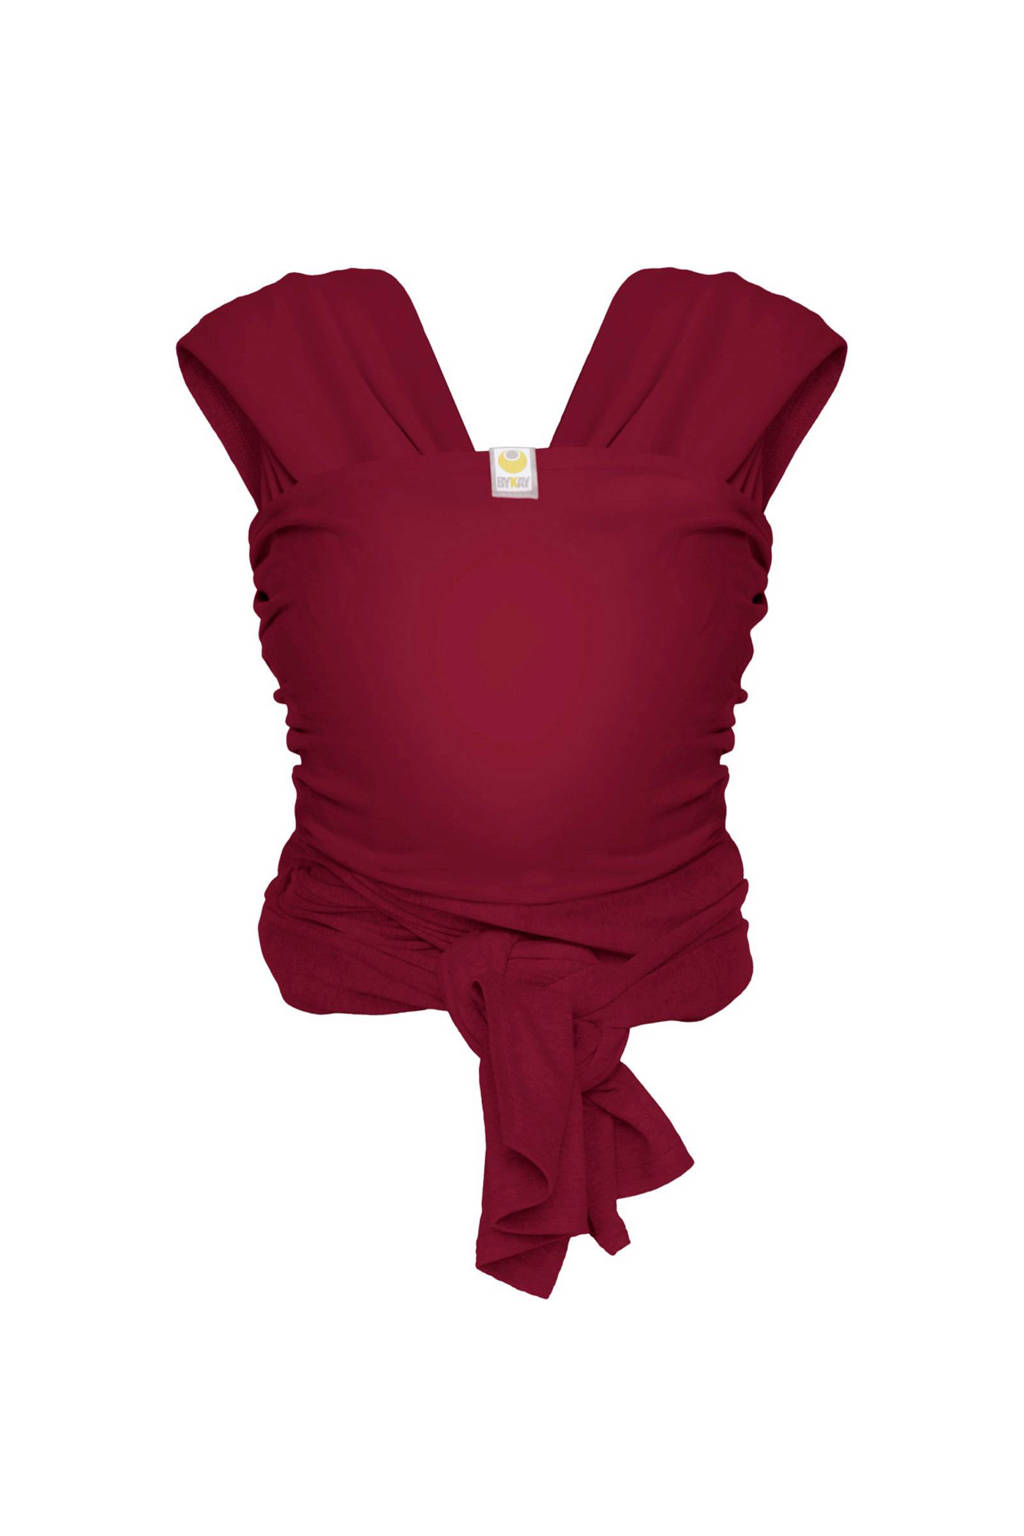 ByKay draagdoek Stretchy Wrap Deluxe maat L rood, Berry Red